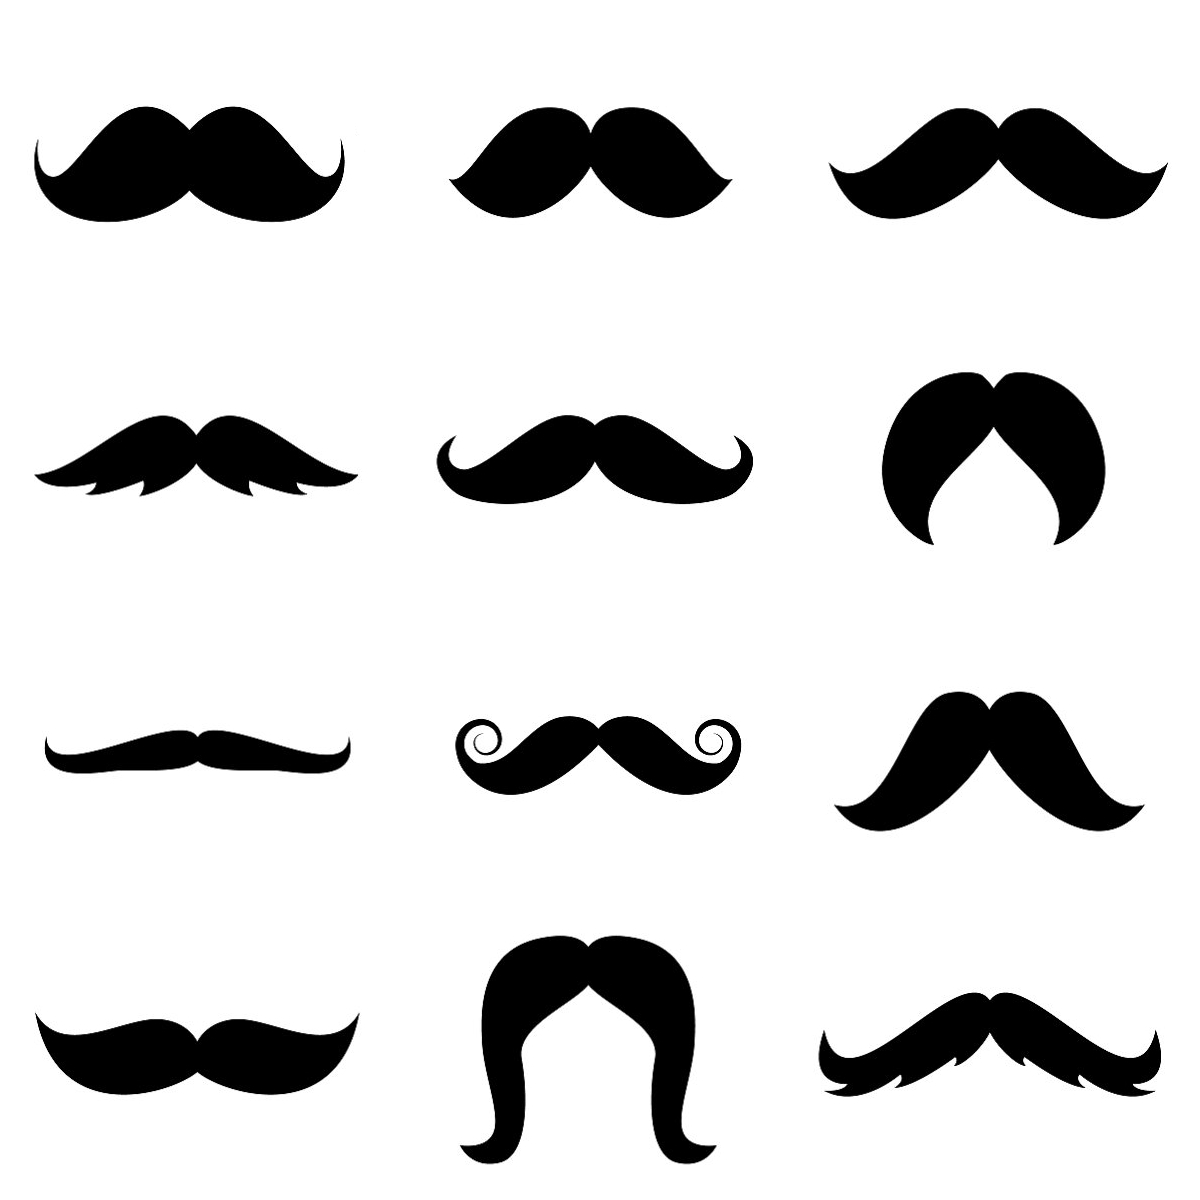 Mustache Template Free Printable | Stenciled Drop Cloth Pillow - Name That Mustache Game Printable Free